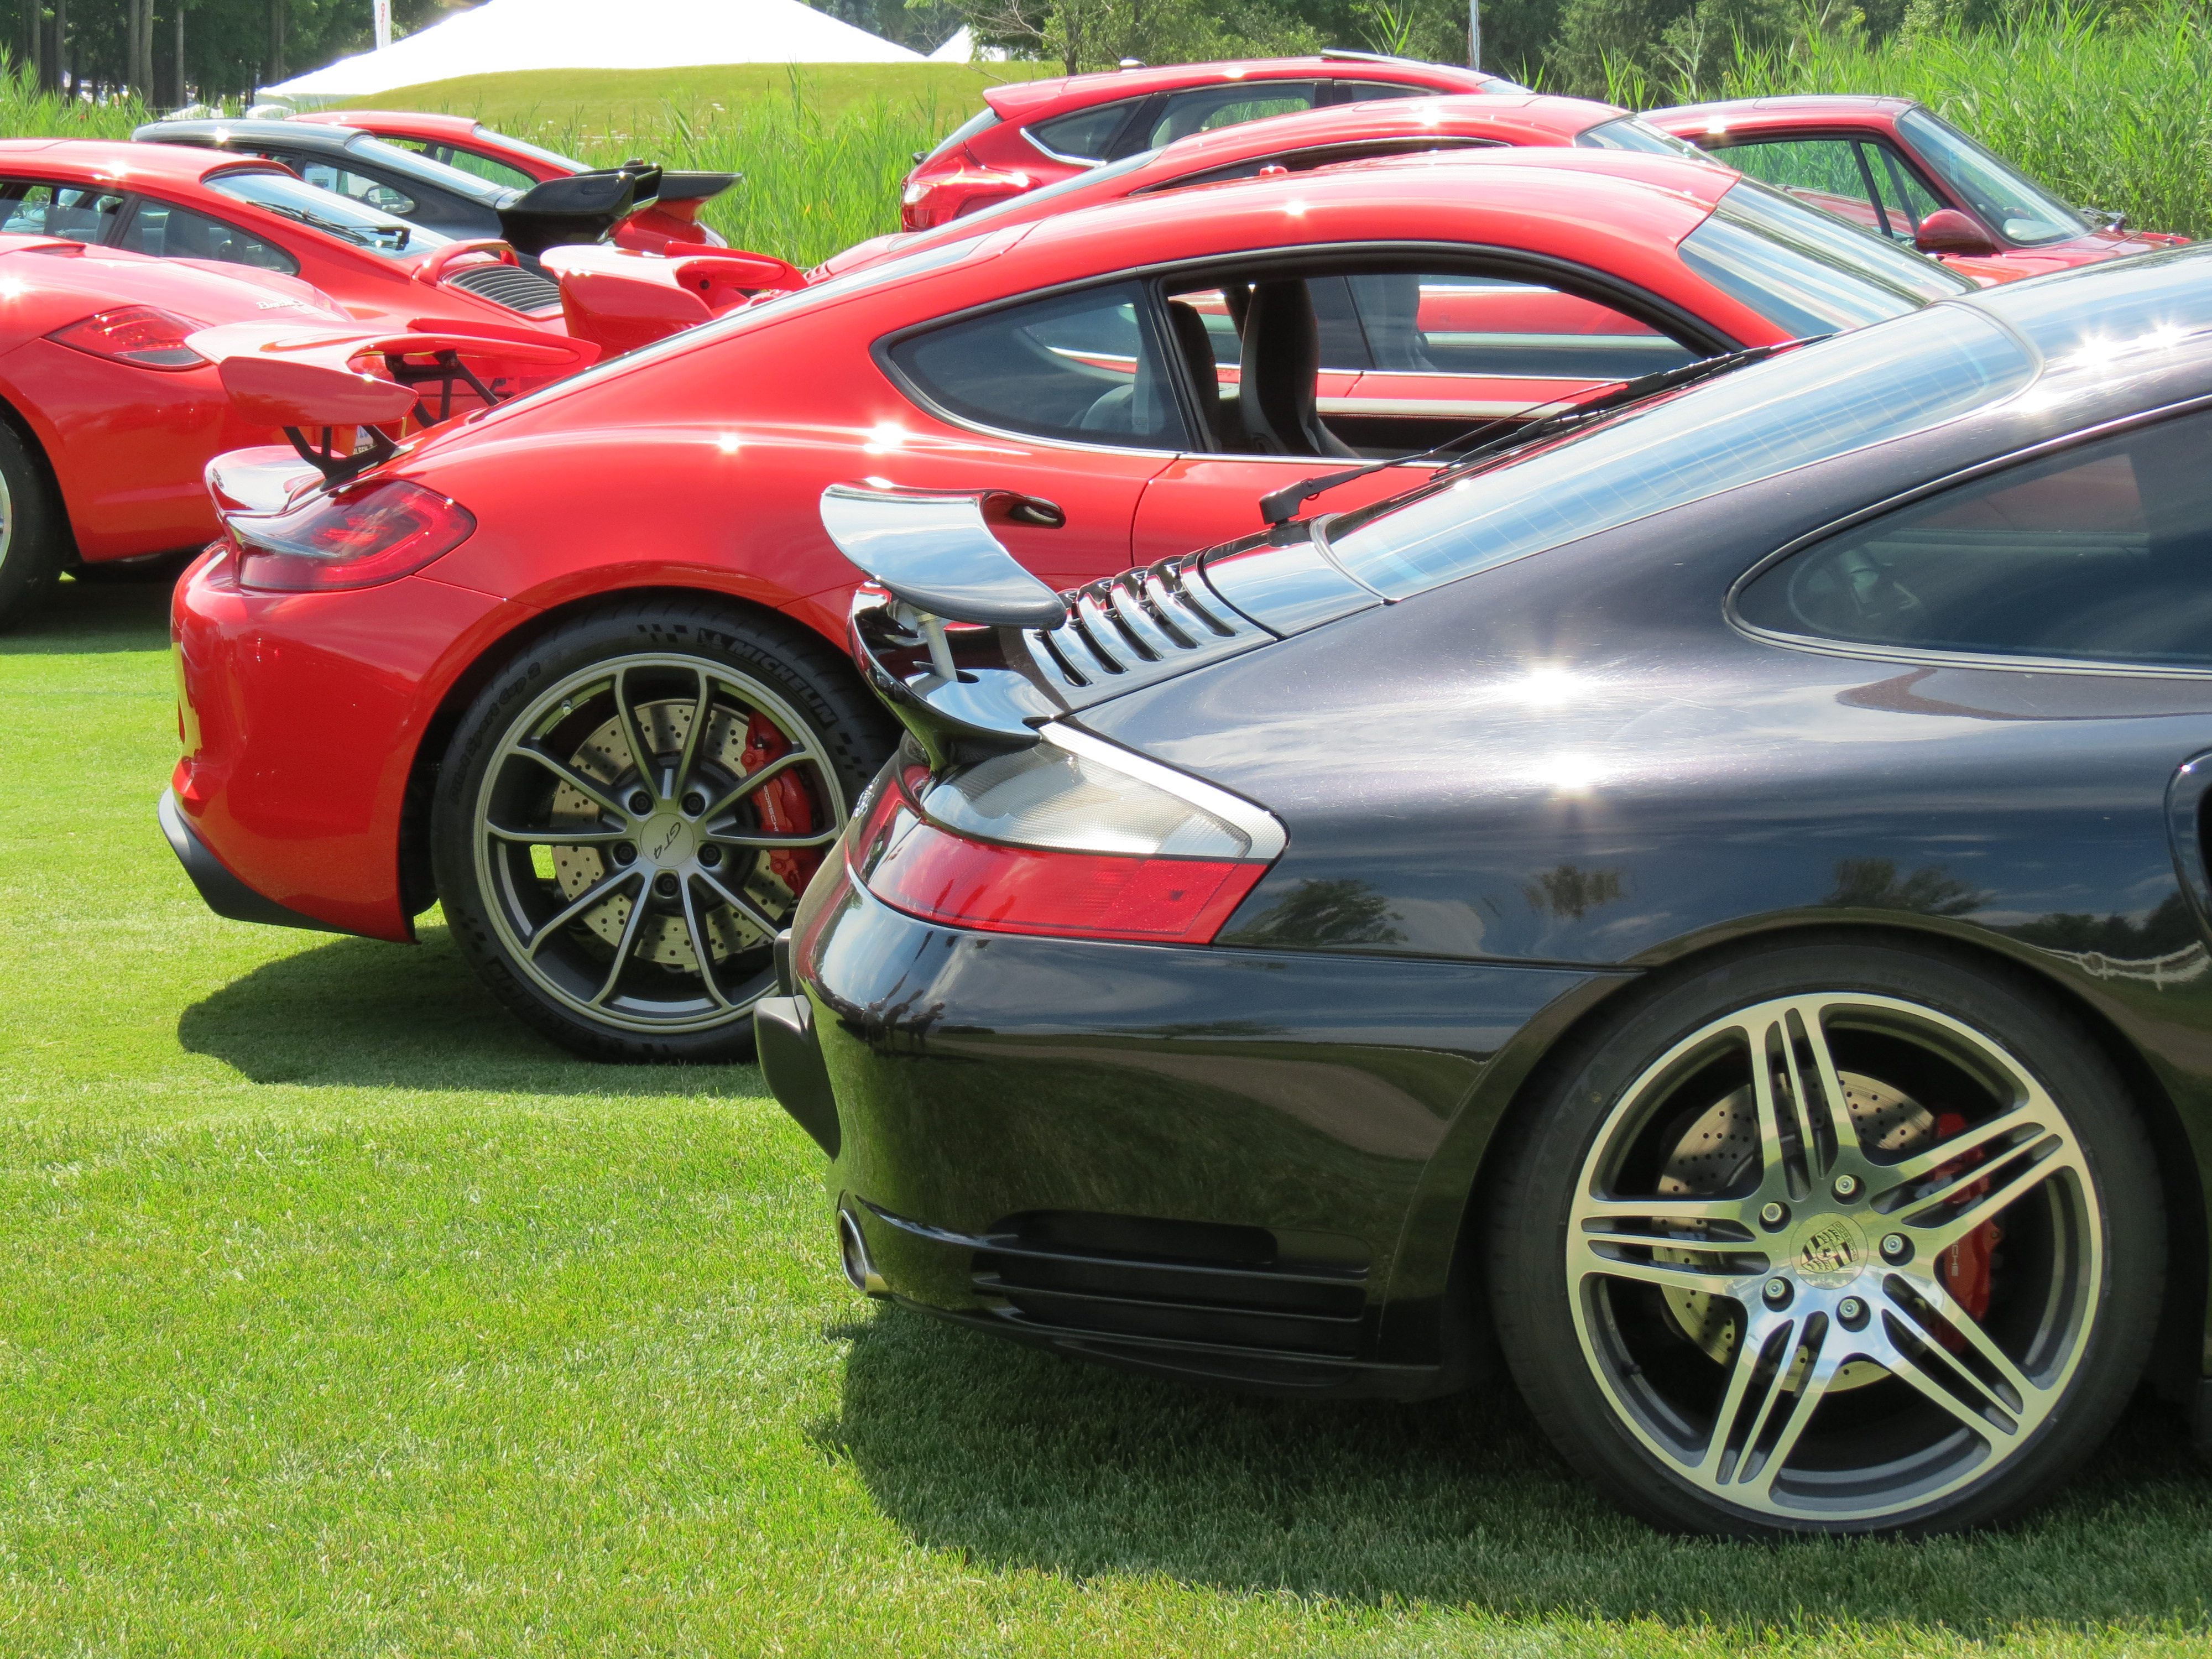 Zone 4 Concours At The Concours Porsche Club Of America